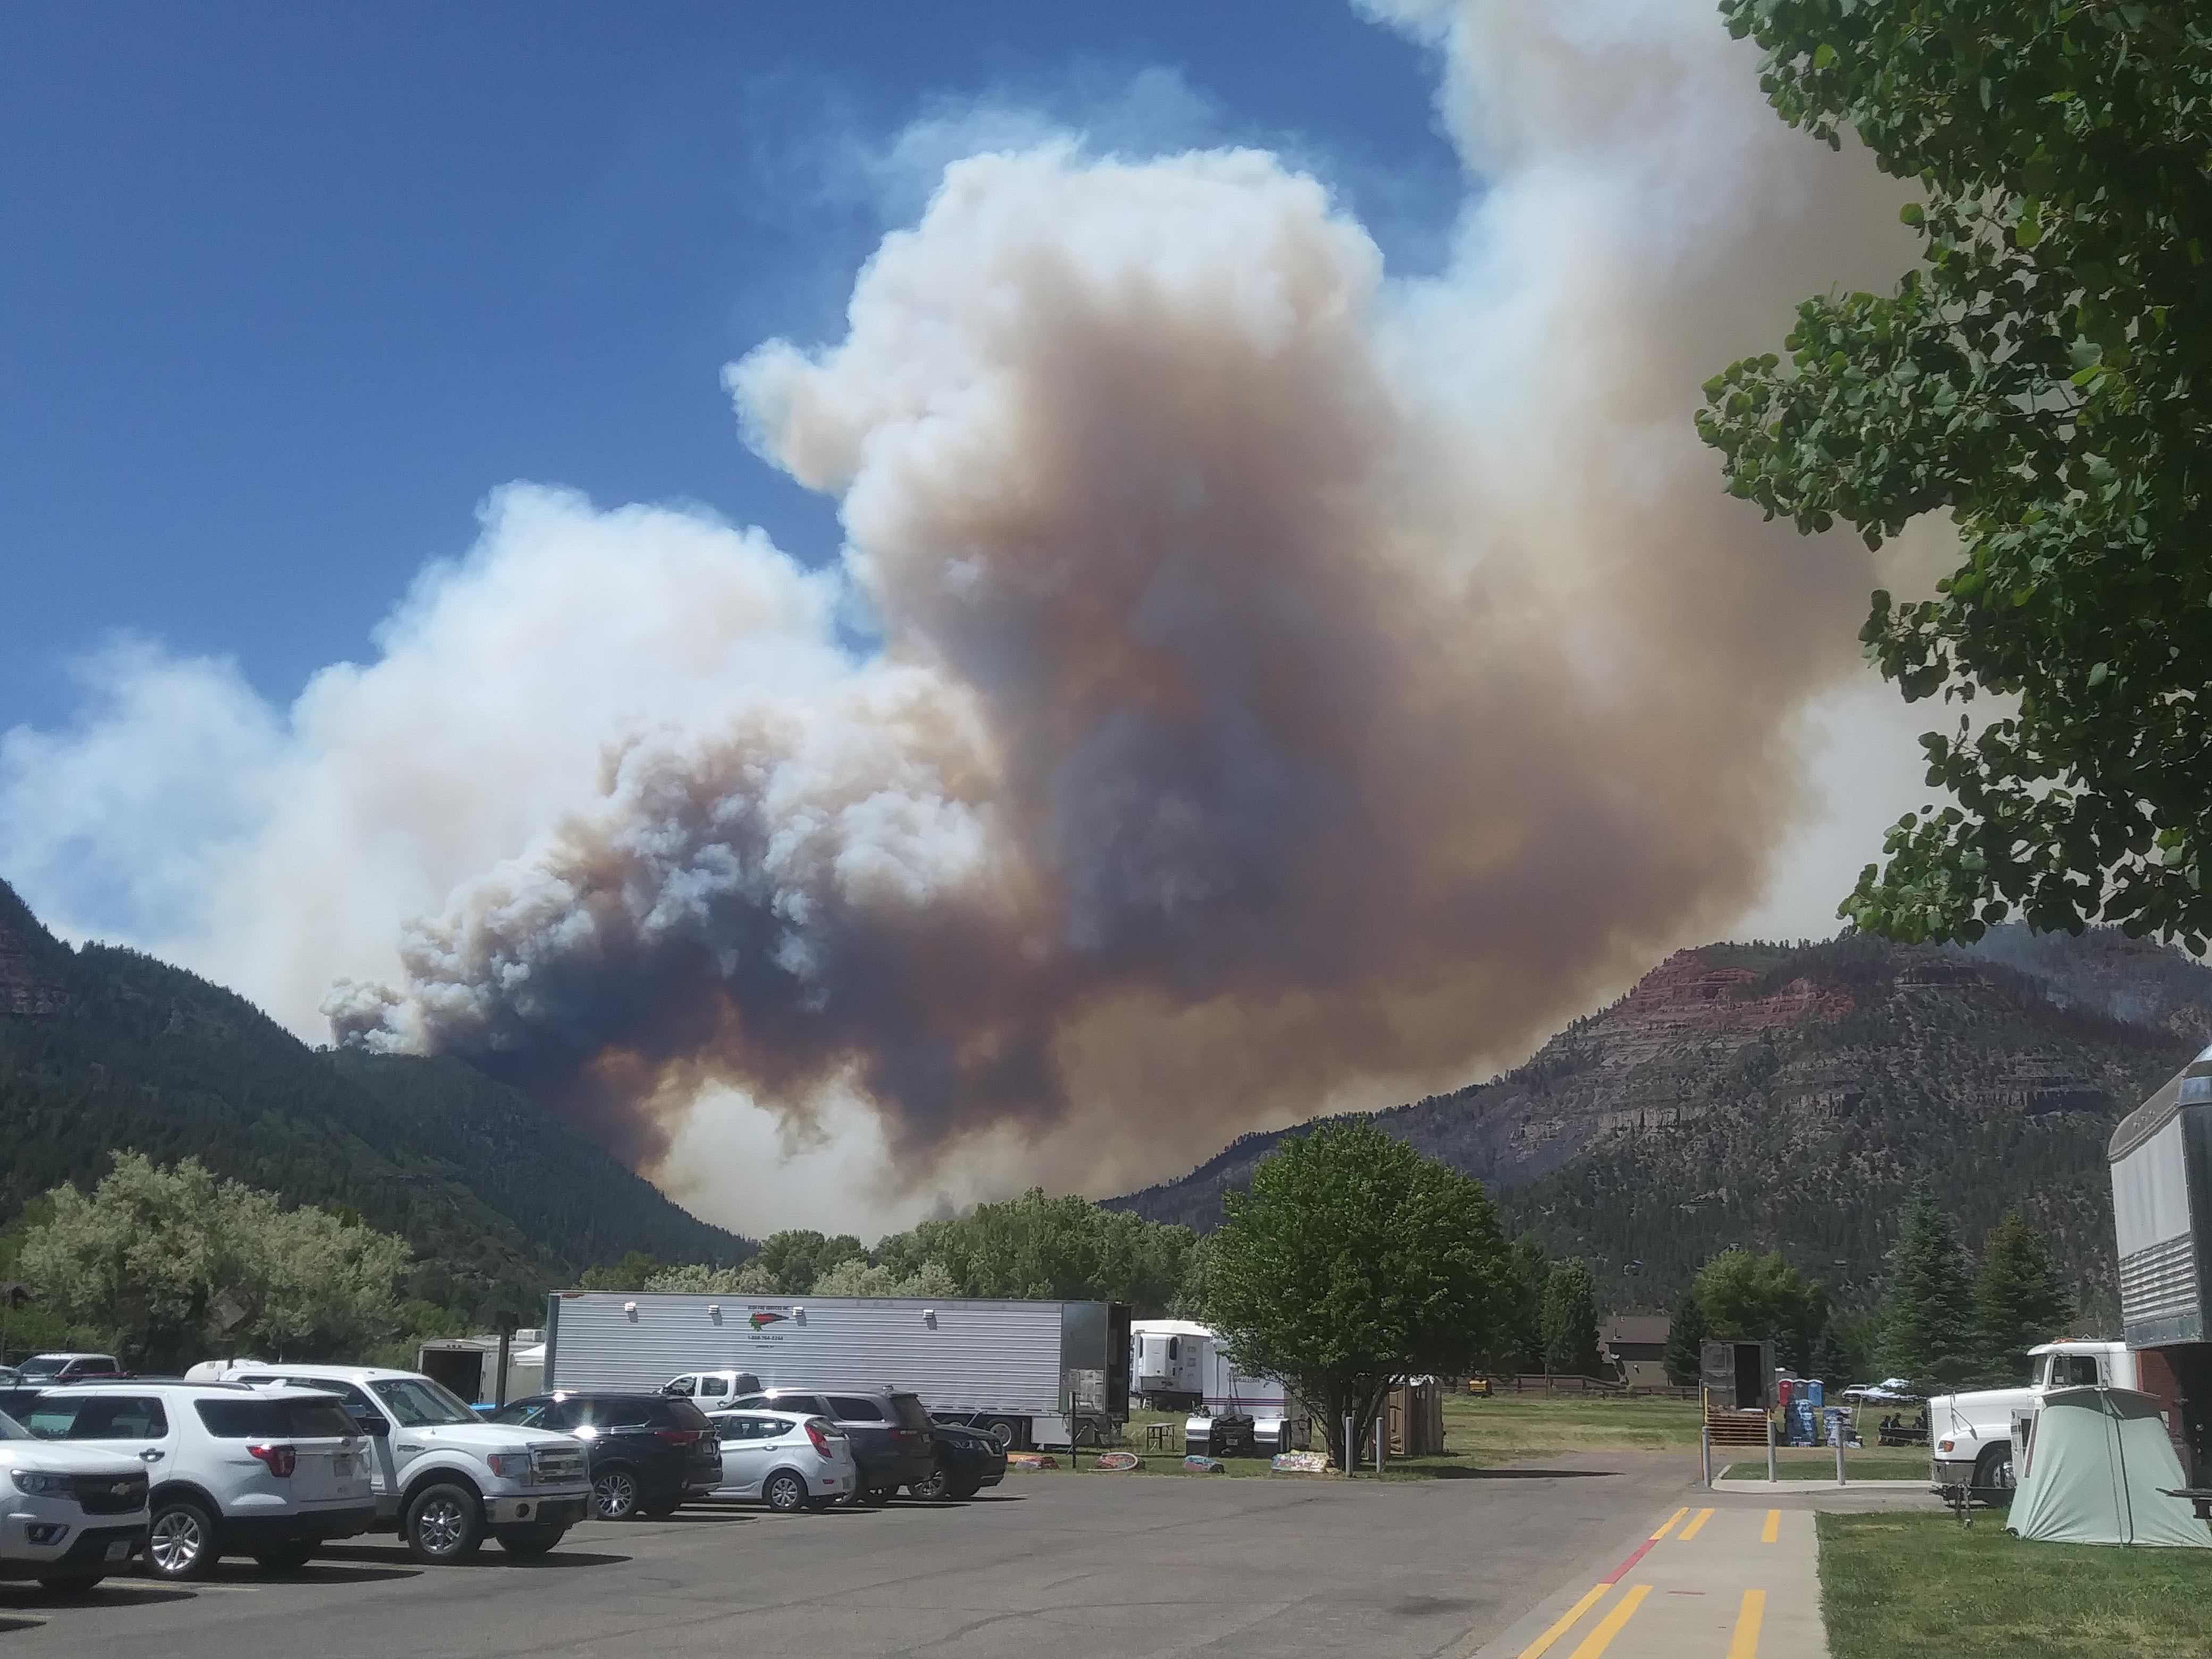 Colorado wildfire highlights increased fire risk   Temblor net